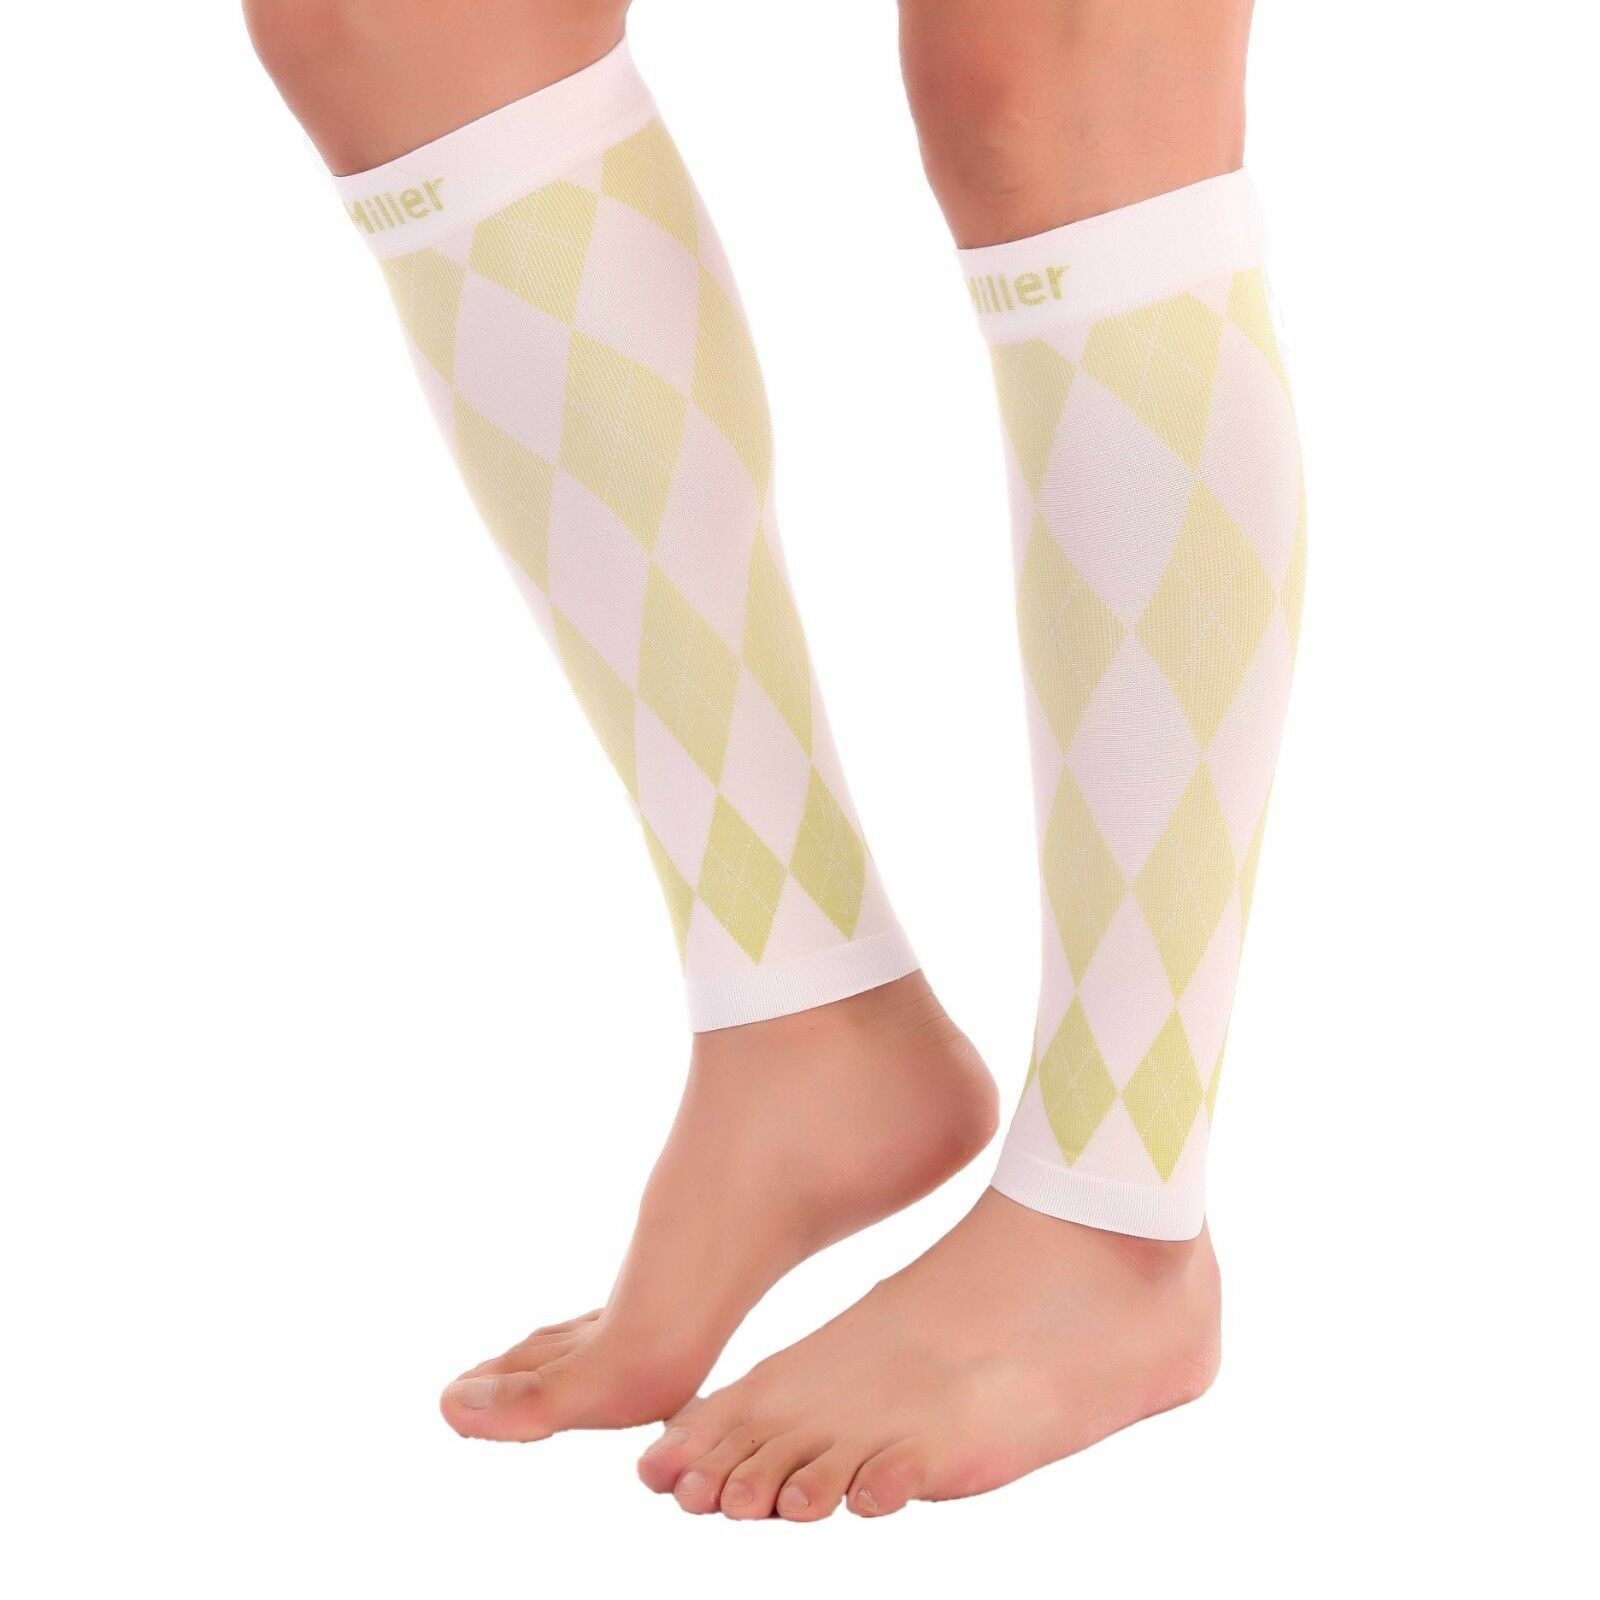 c7a4e0cdadc Doc Miller Calf Compression Sleeve 1 Pair 20-30mmHg Recovery Varicose Veins  WHITE GREEN